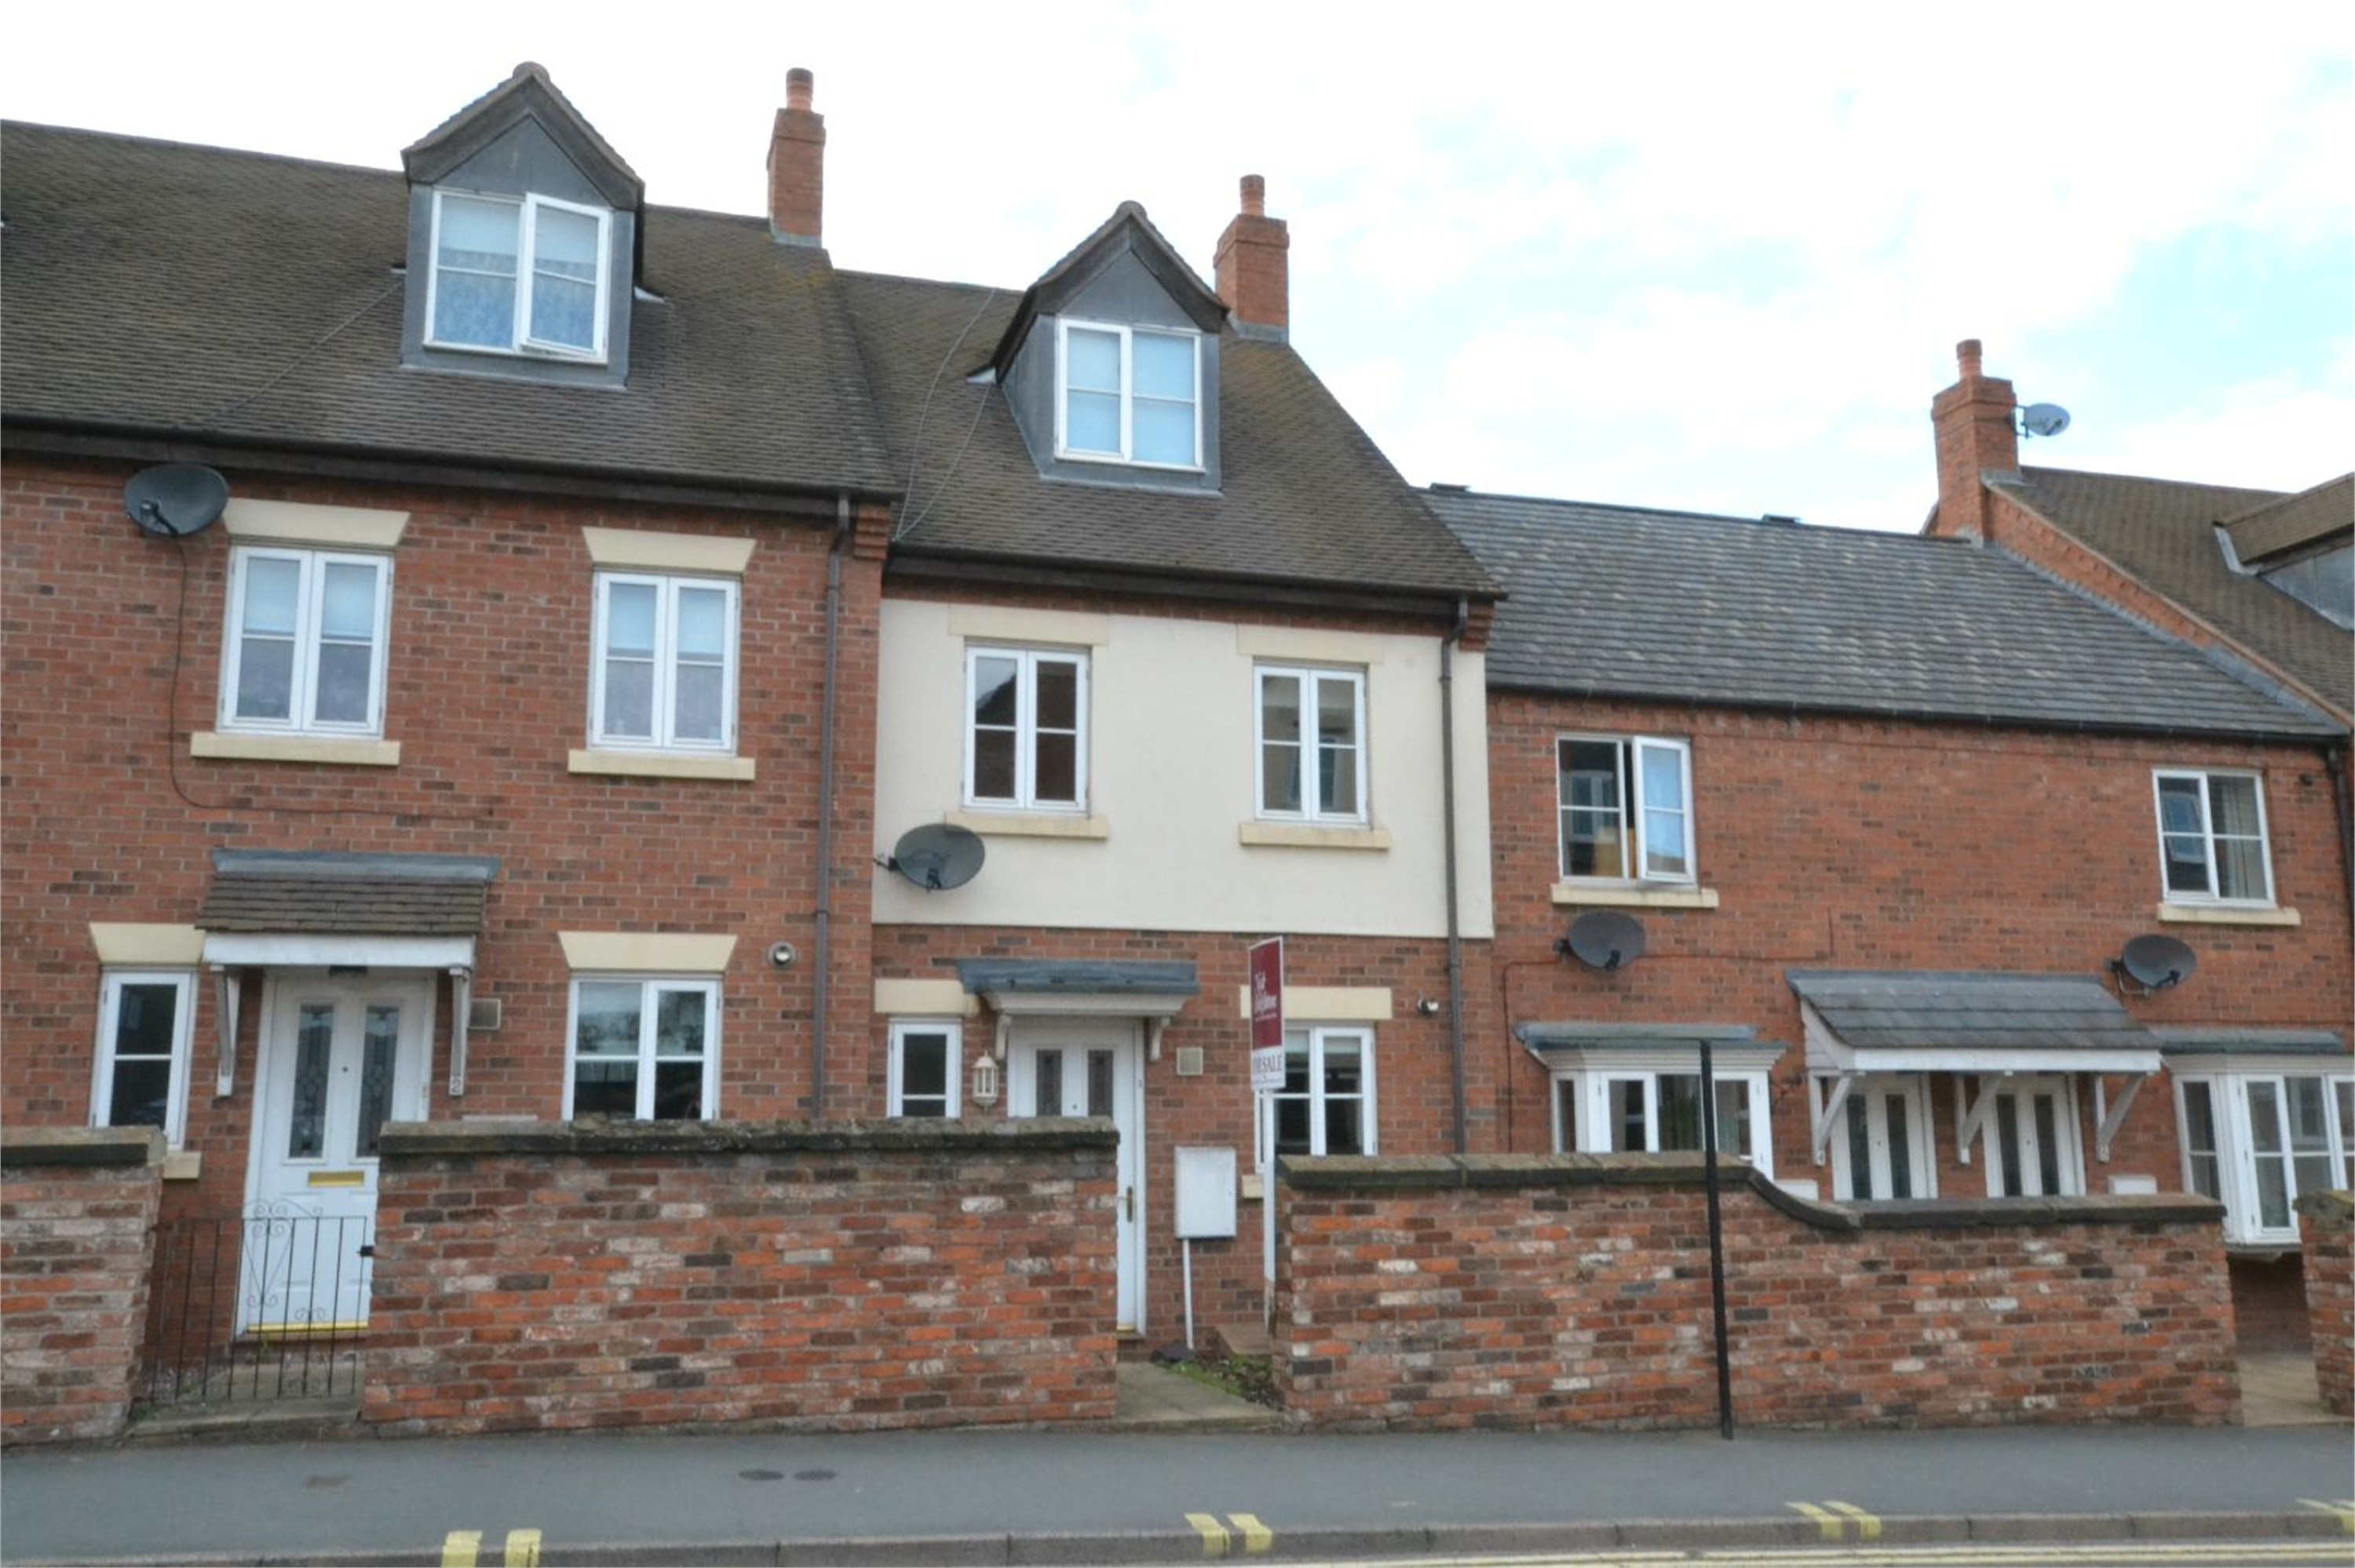 3 Bedrooms Terraced House for sale in 3 The Smithfields, Newport, Shropshire, TF10